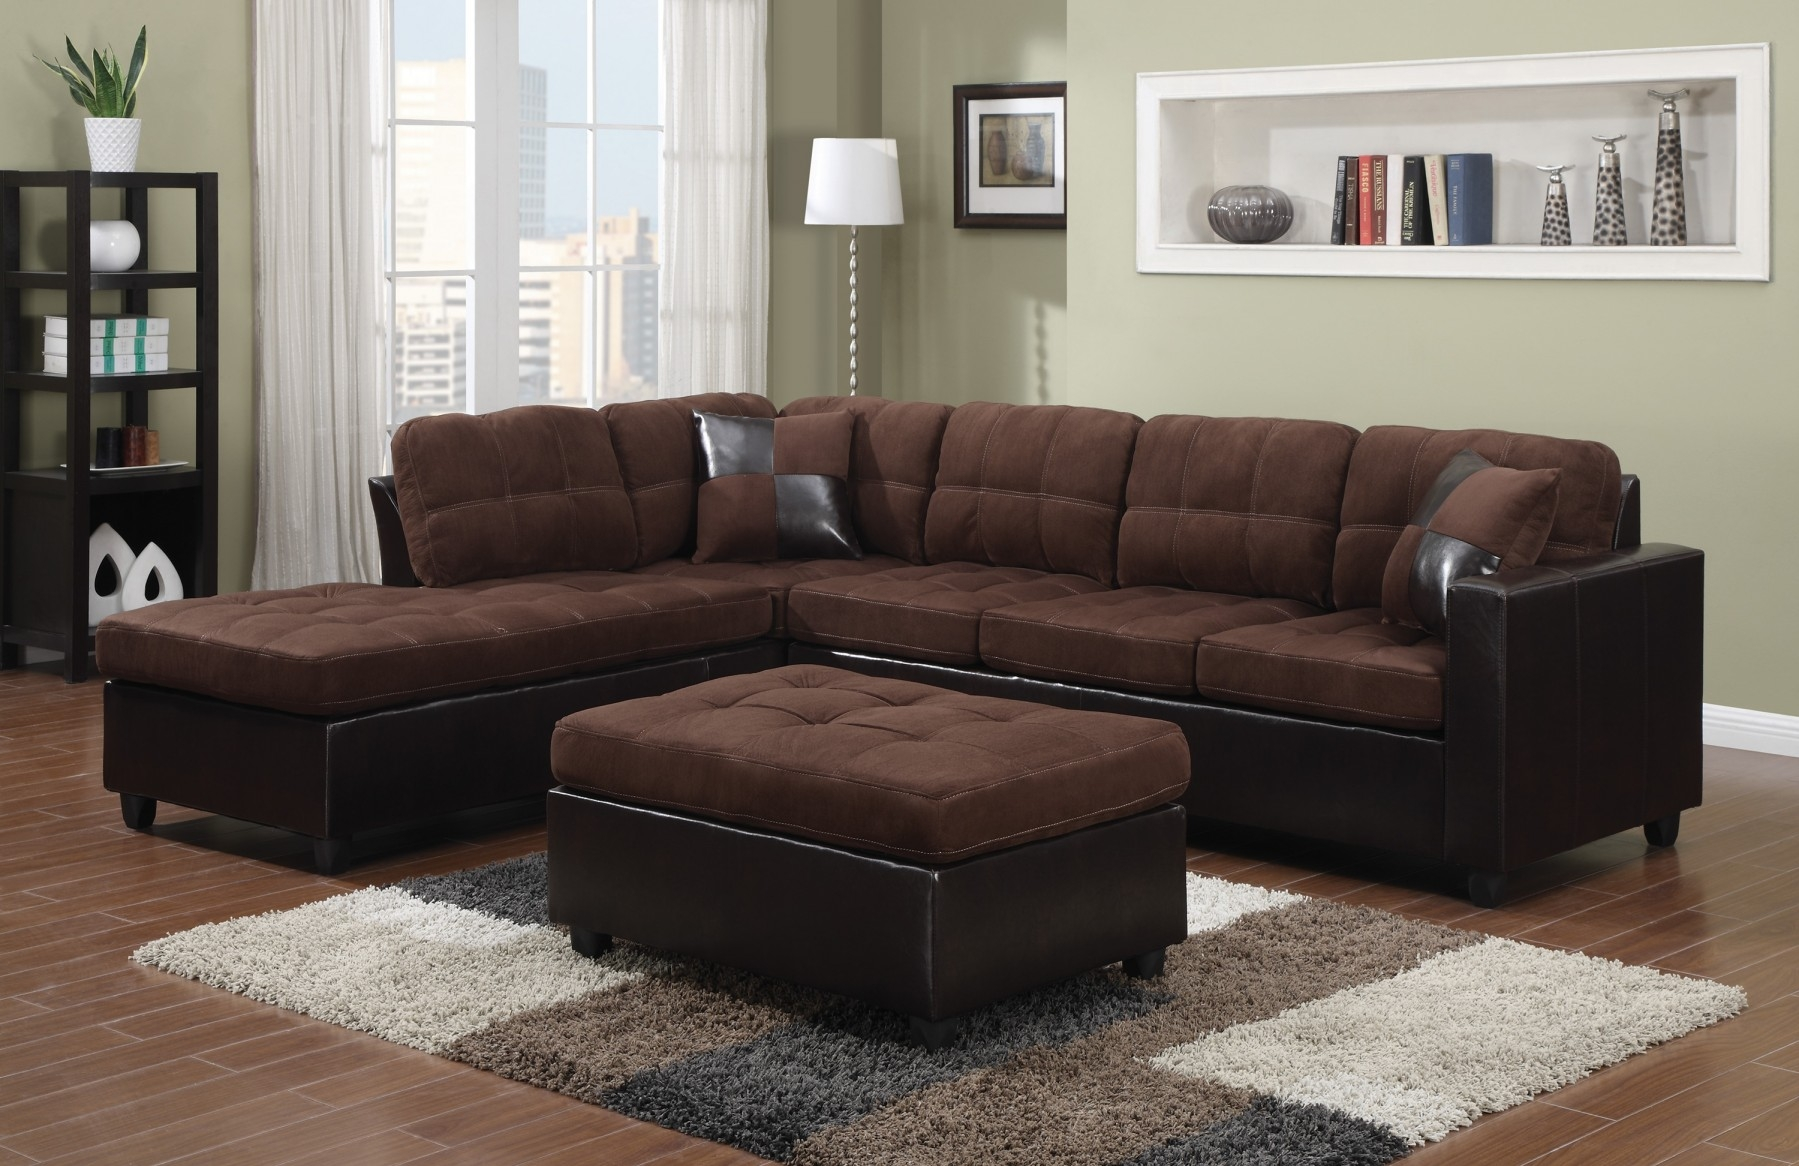 Popular Photo of Closeout Sectional Sofas